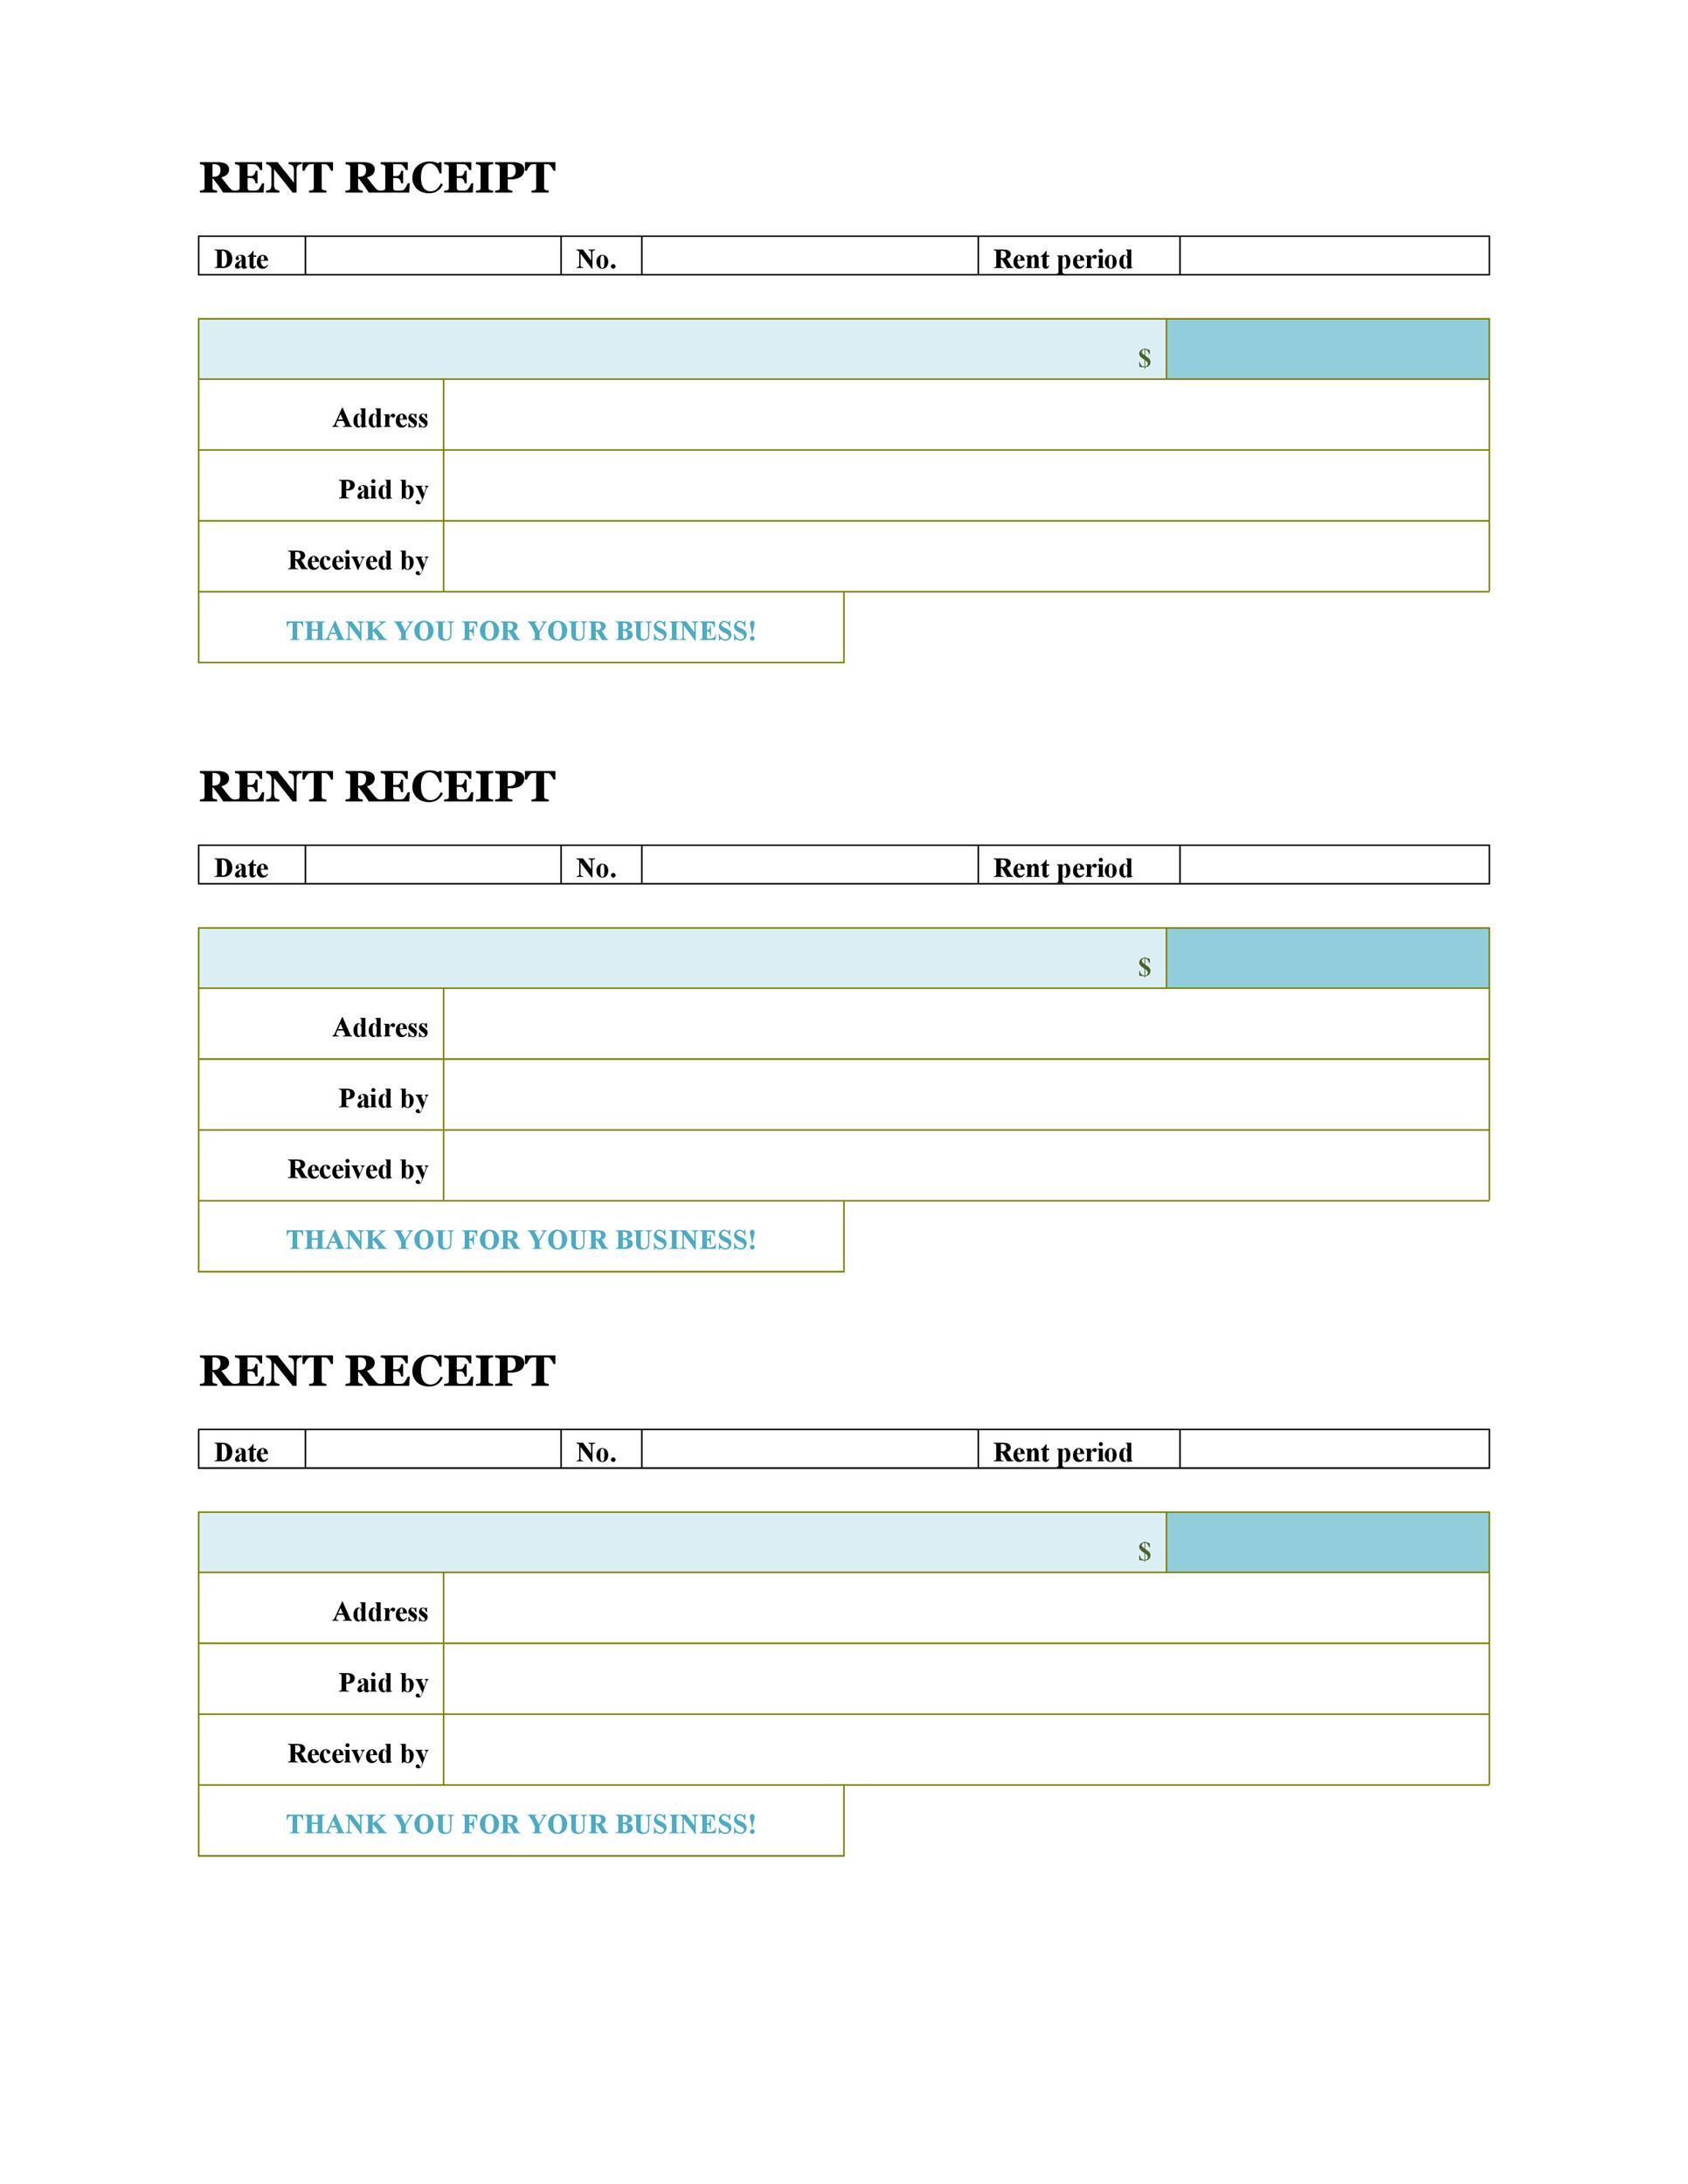 50 Free Receipt Templates Cash Sales Donation Taxi – Rental Receipt Sample